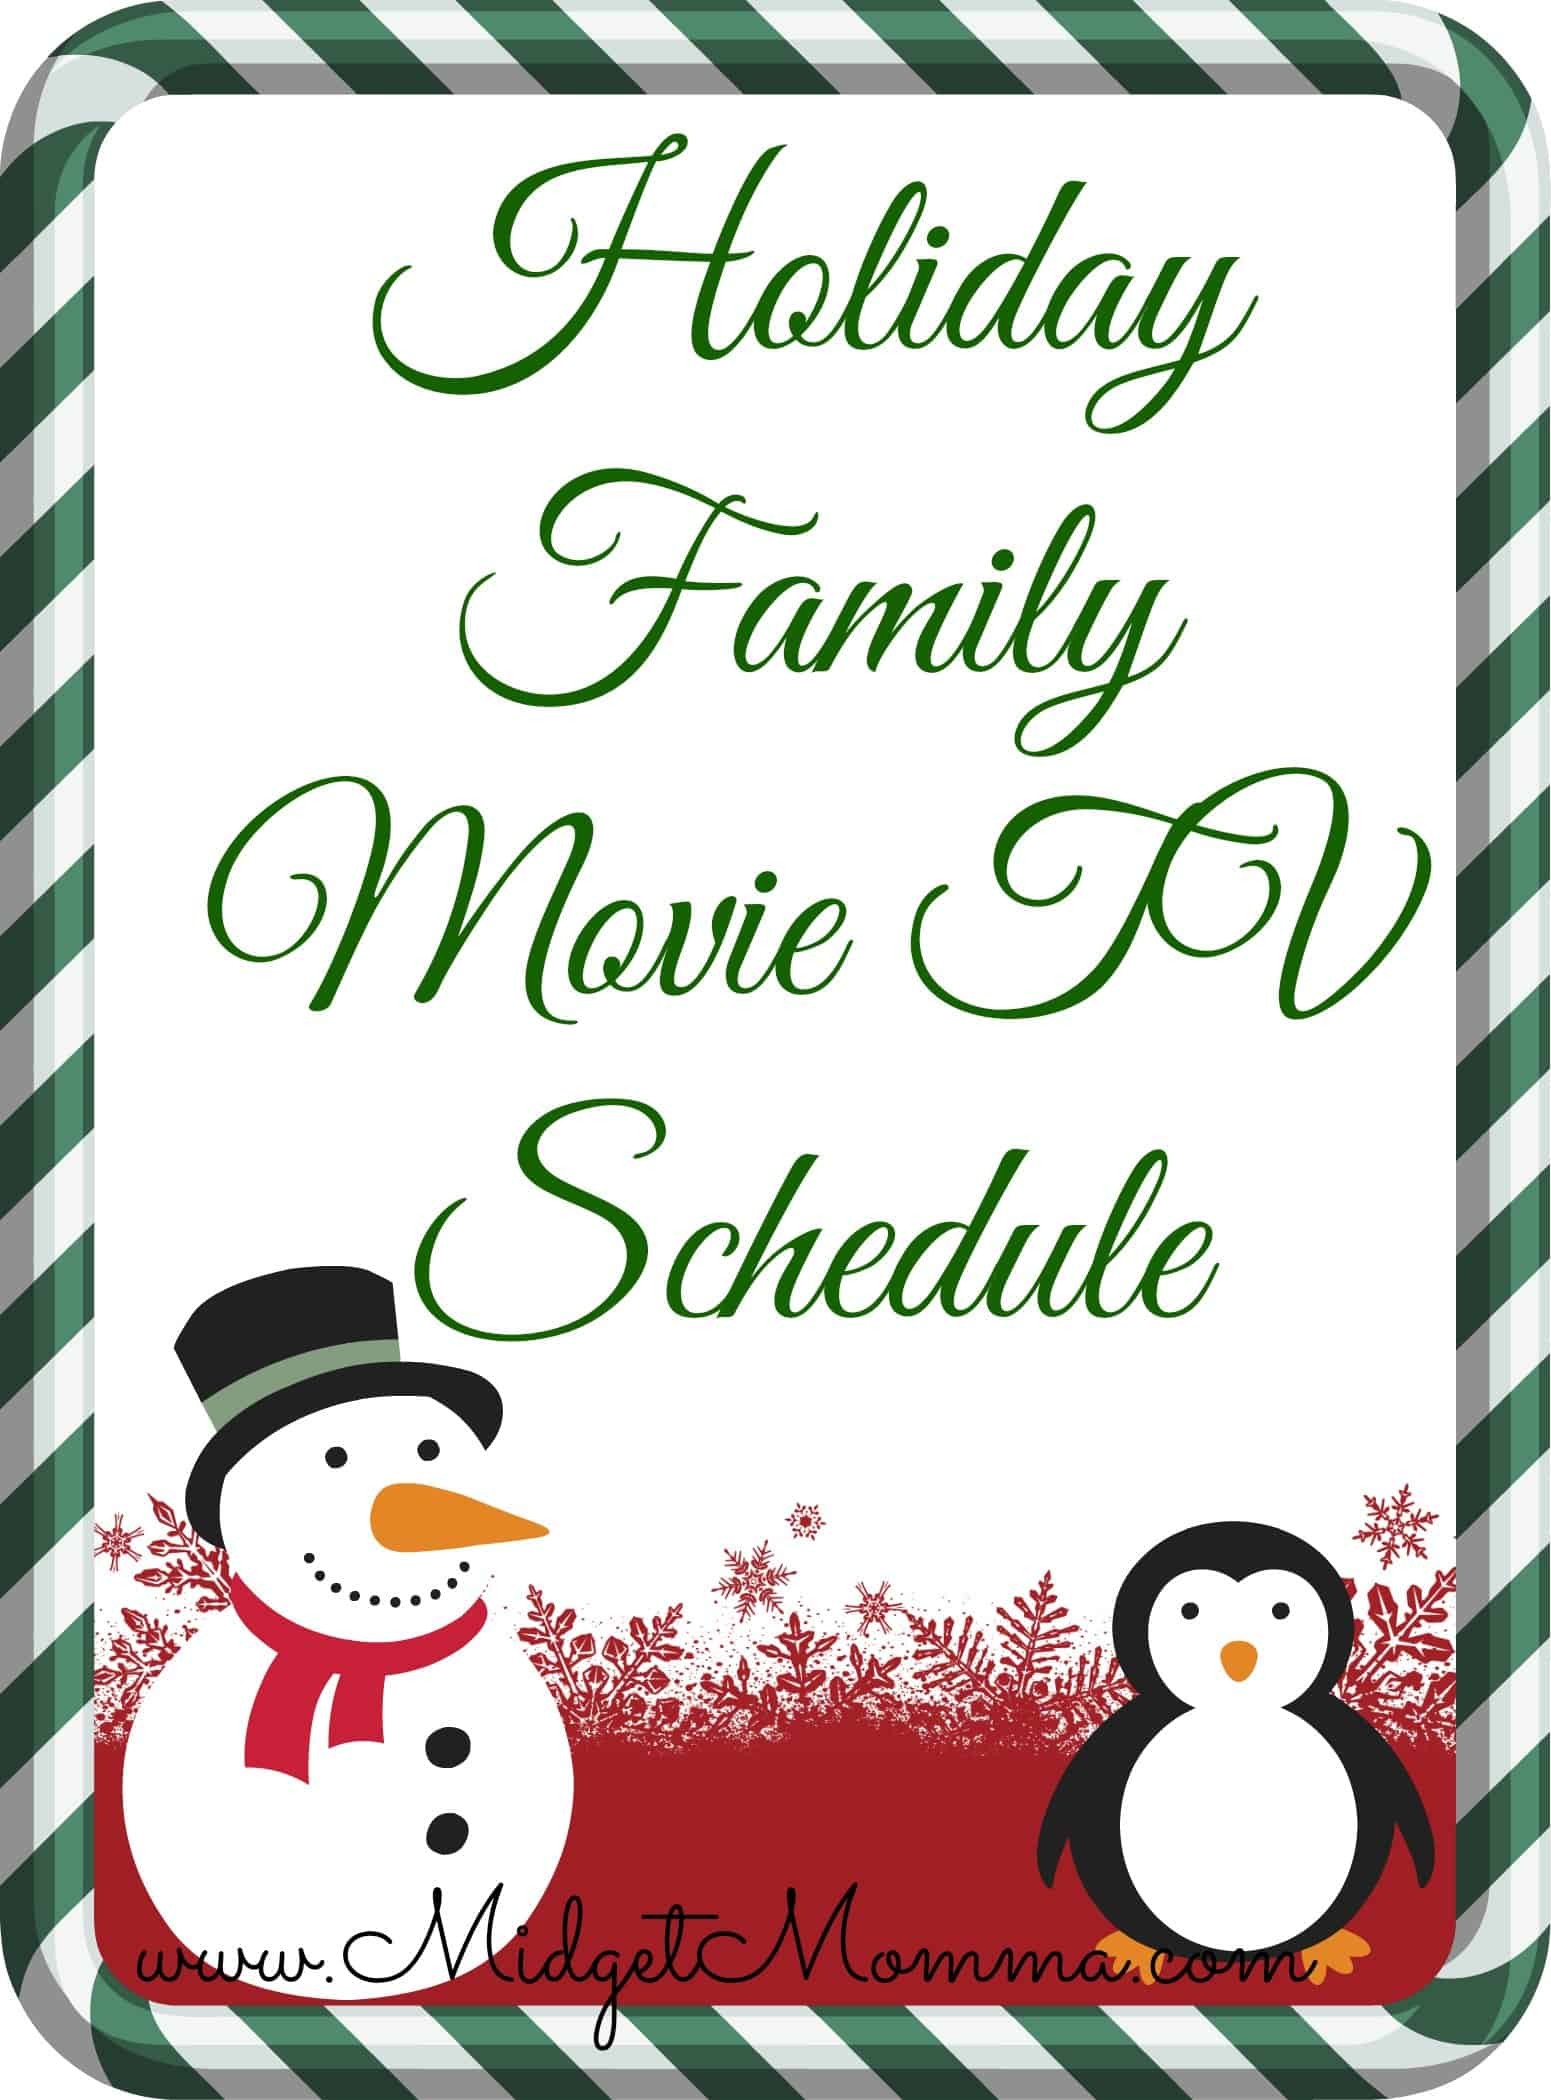 Holiday Family Movie TV Schedule 2013